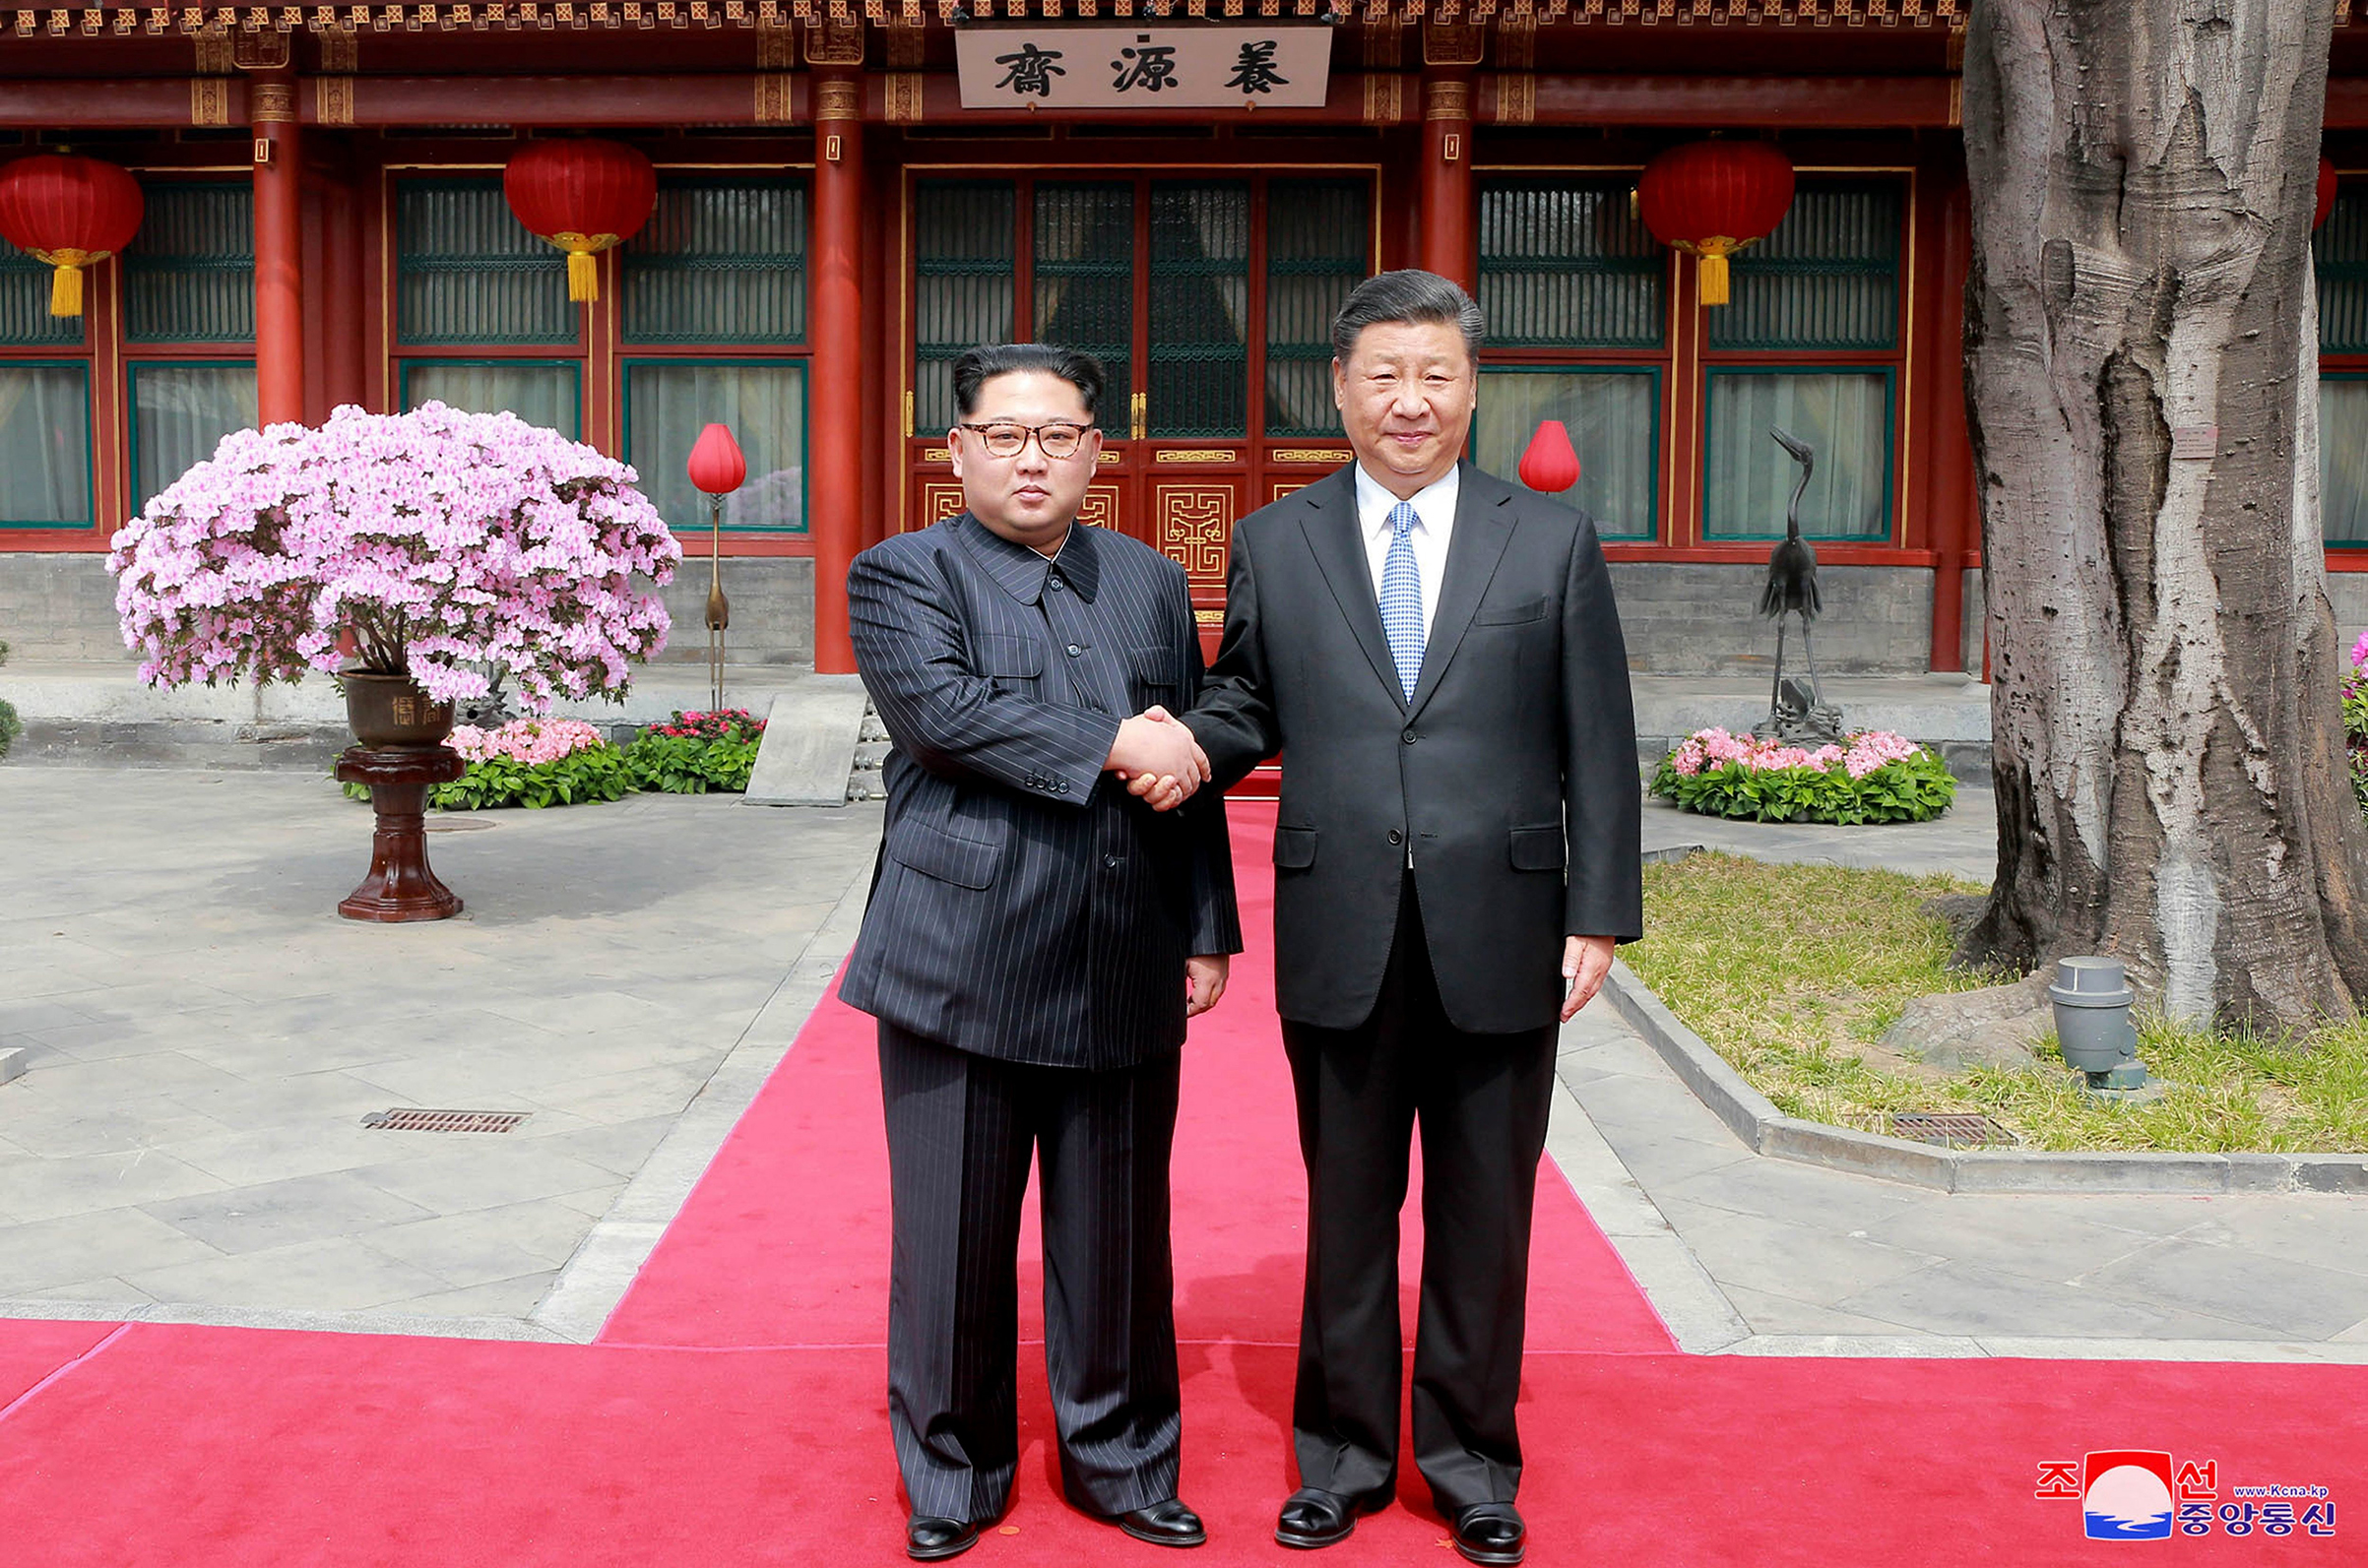 Kim and Xi shake hands at the Diaoyutai State Guesthouse on March 27; Kim waves from his armored train before departing Beijing following his surprise visit